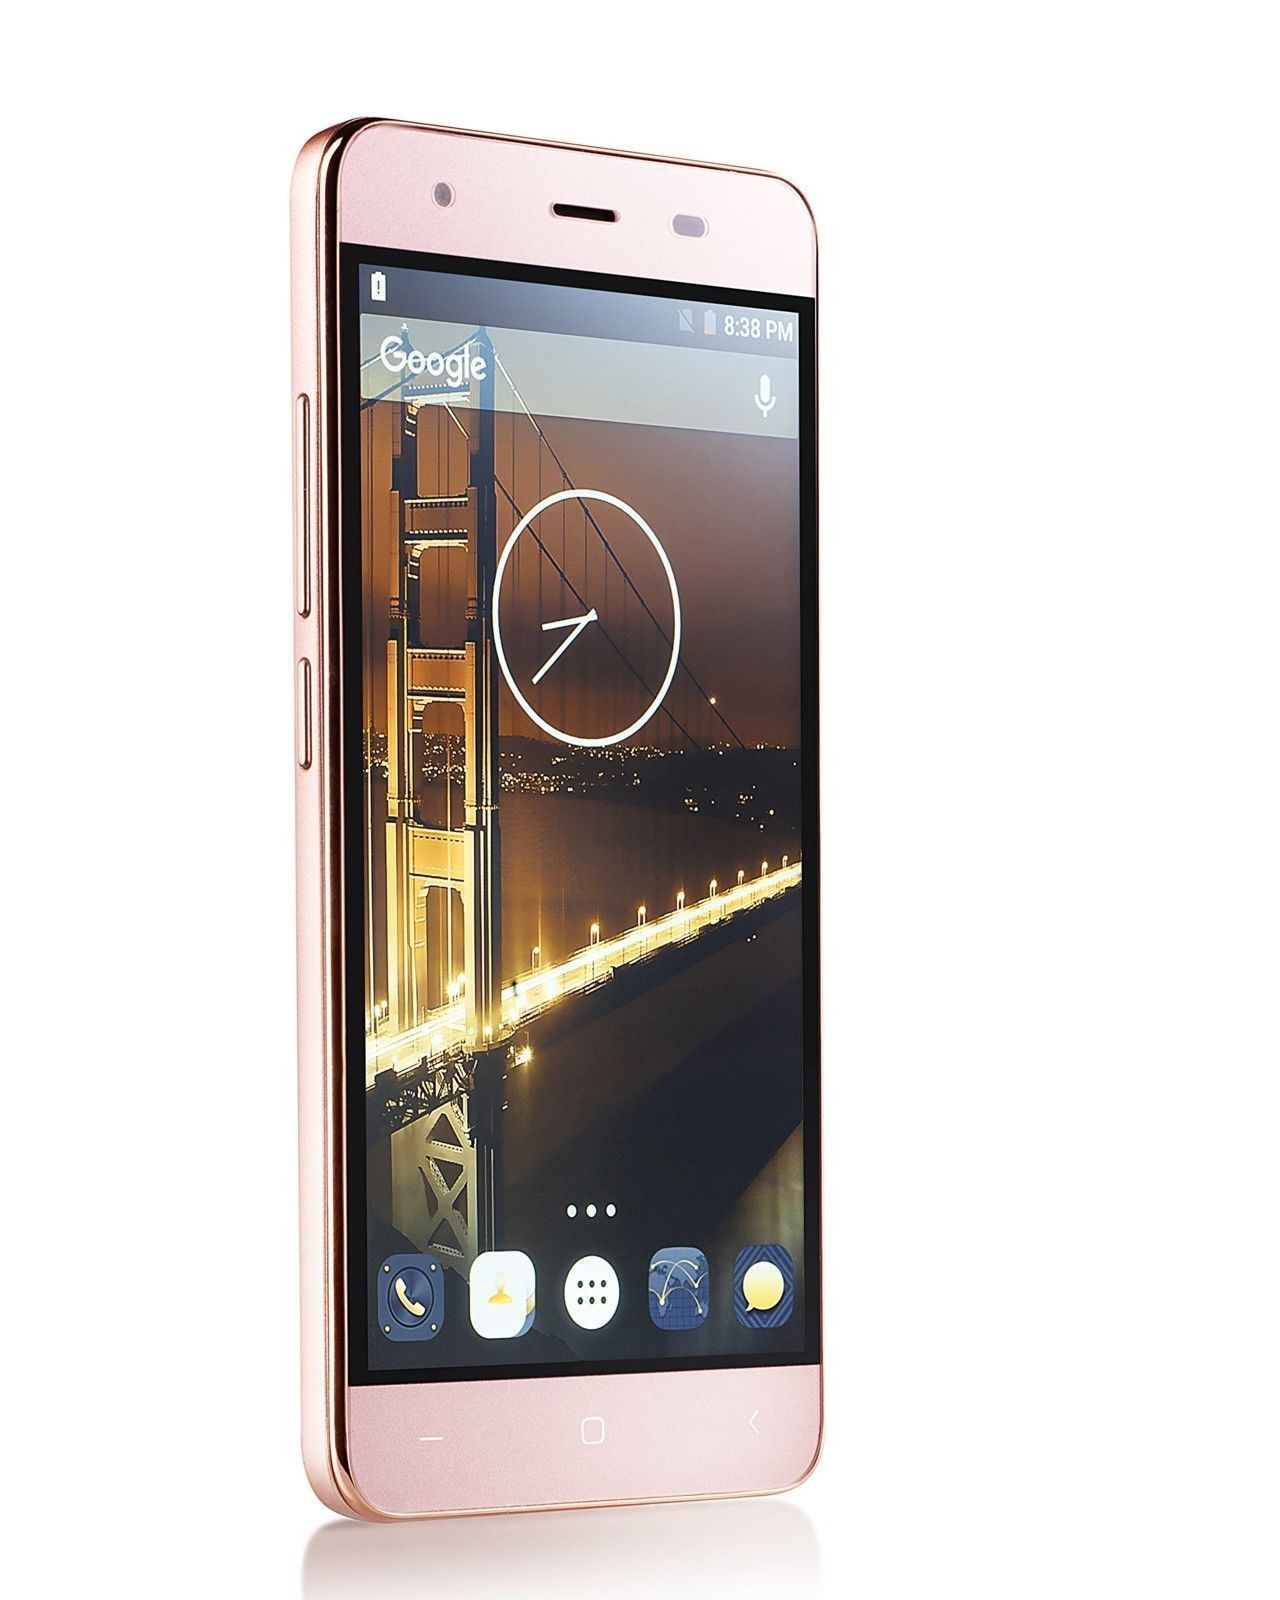 Ultrathin Dual SIM Smartphone 5 Zoll Display, 4G LTE GSM, Android6.0, Octa-Core